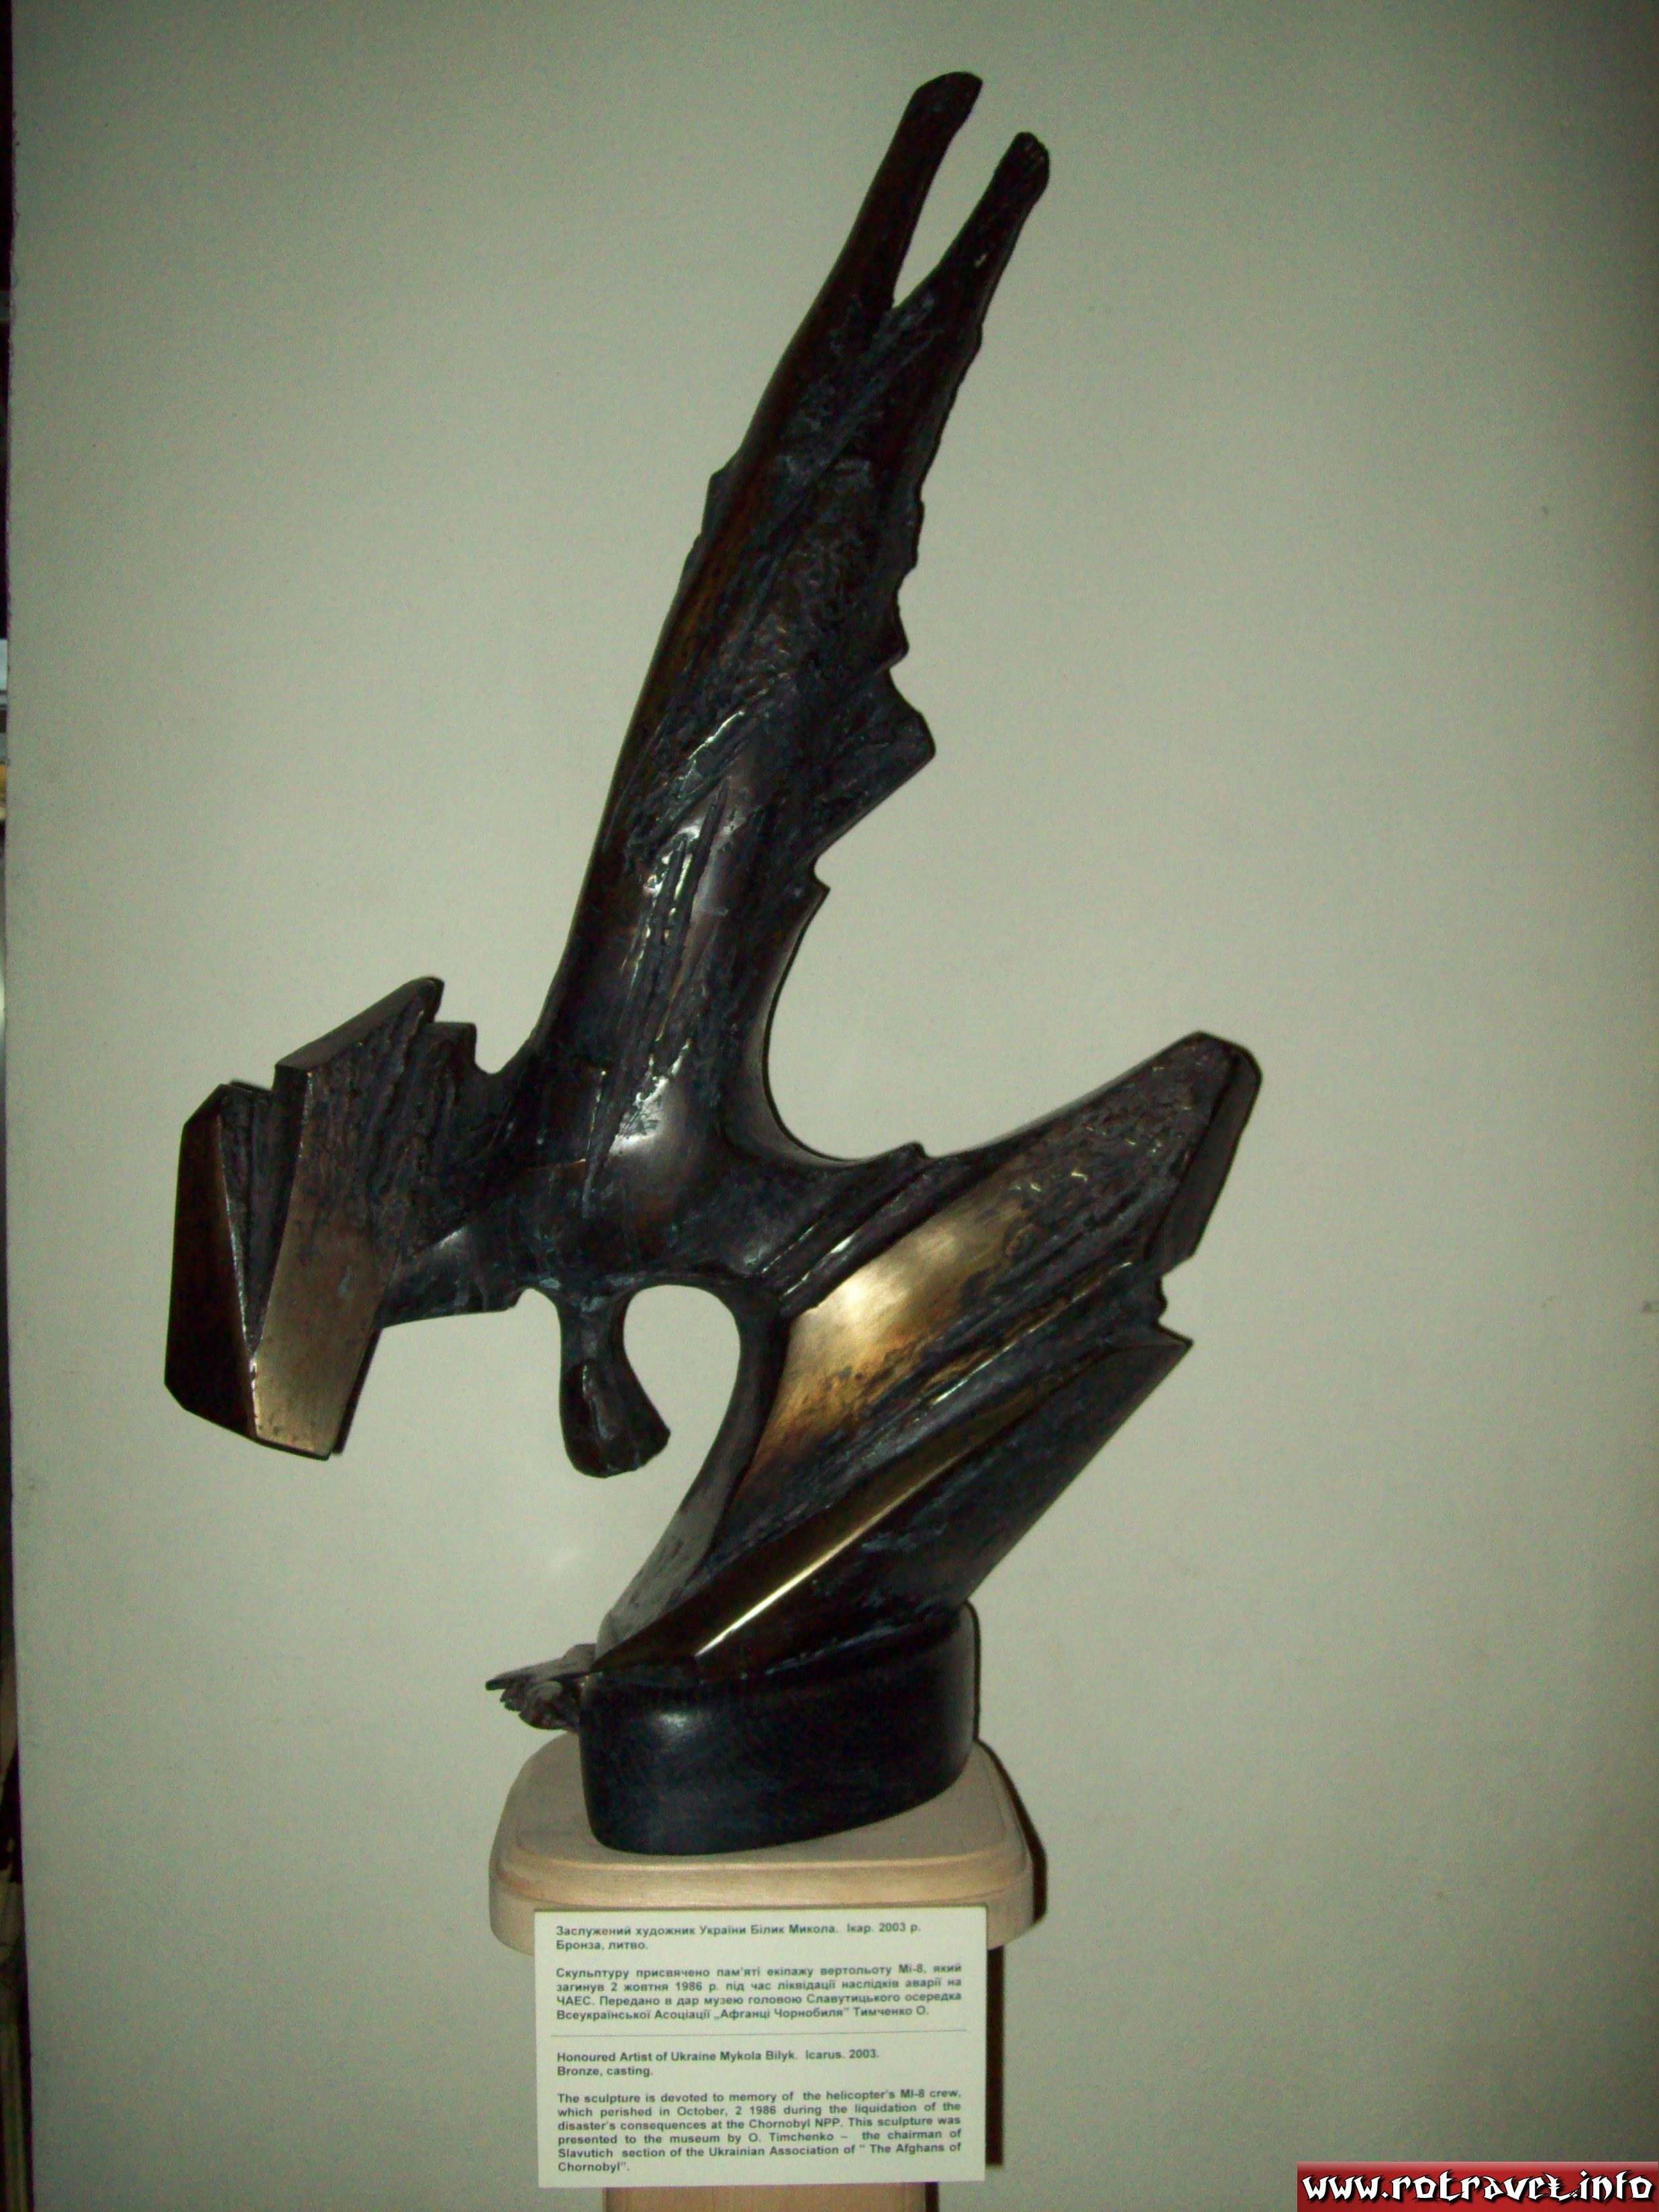 A sculpture devoted to memory of the helicopter's Mi-8 crew